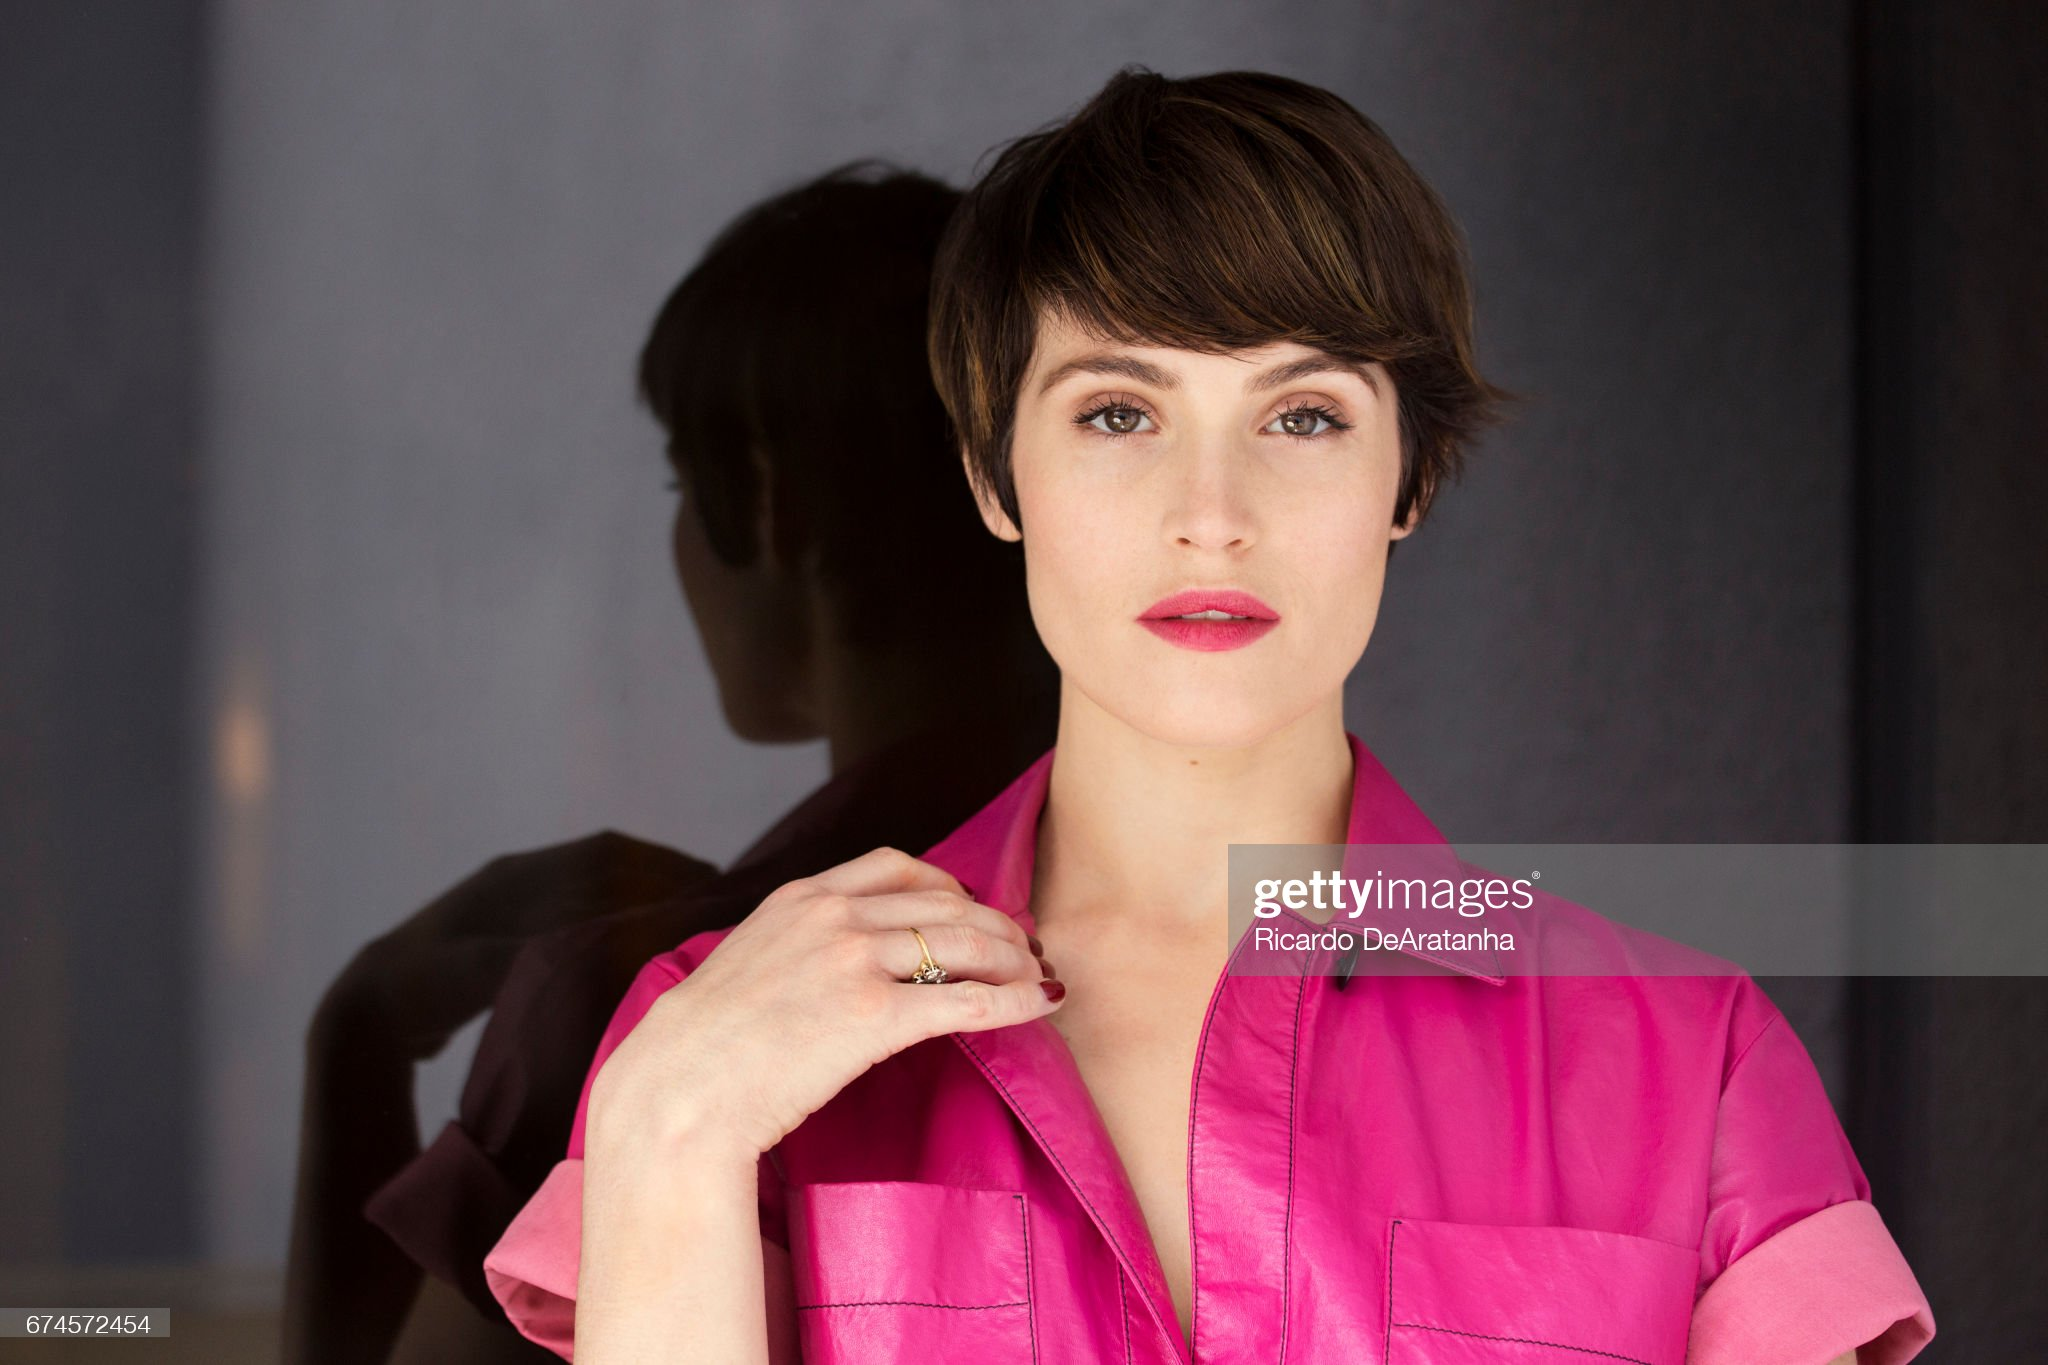 gemma-arterton-is-photographed-for-los-angeles-times-on-april-7-2017-picture-id674572454